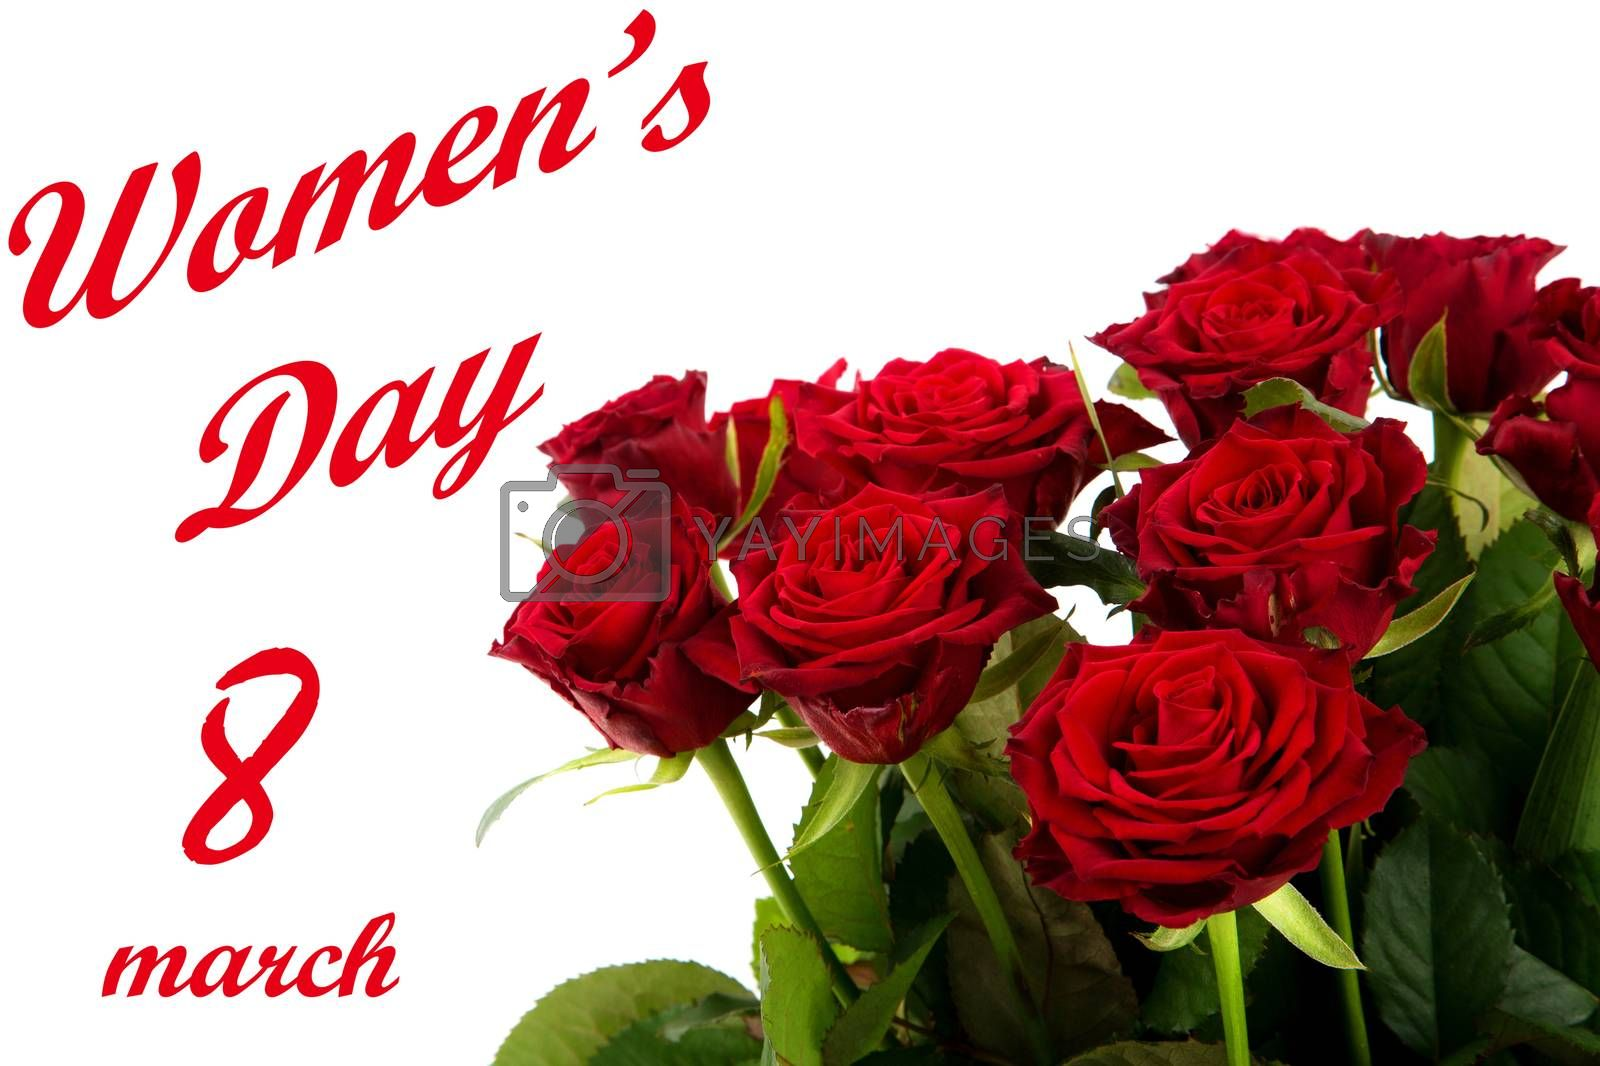 Happy Womens Day - red roses on a white background